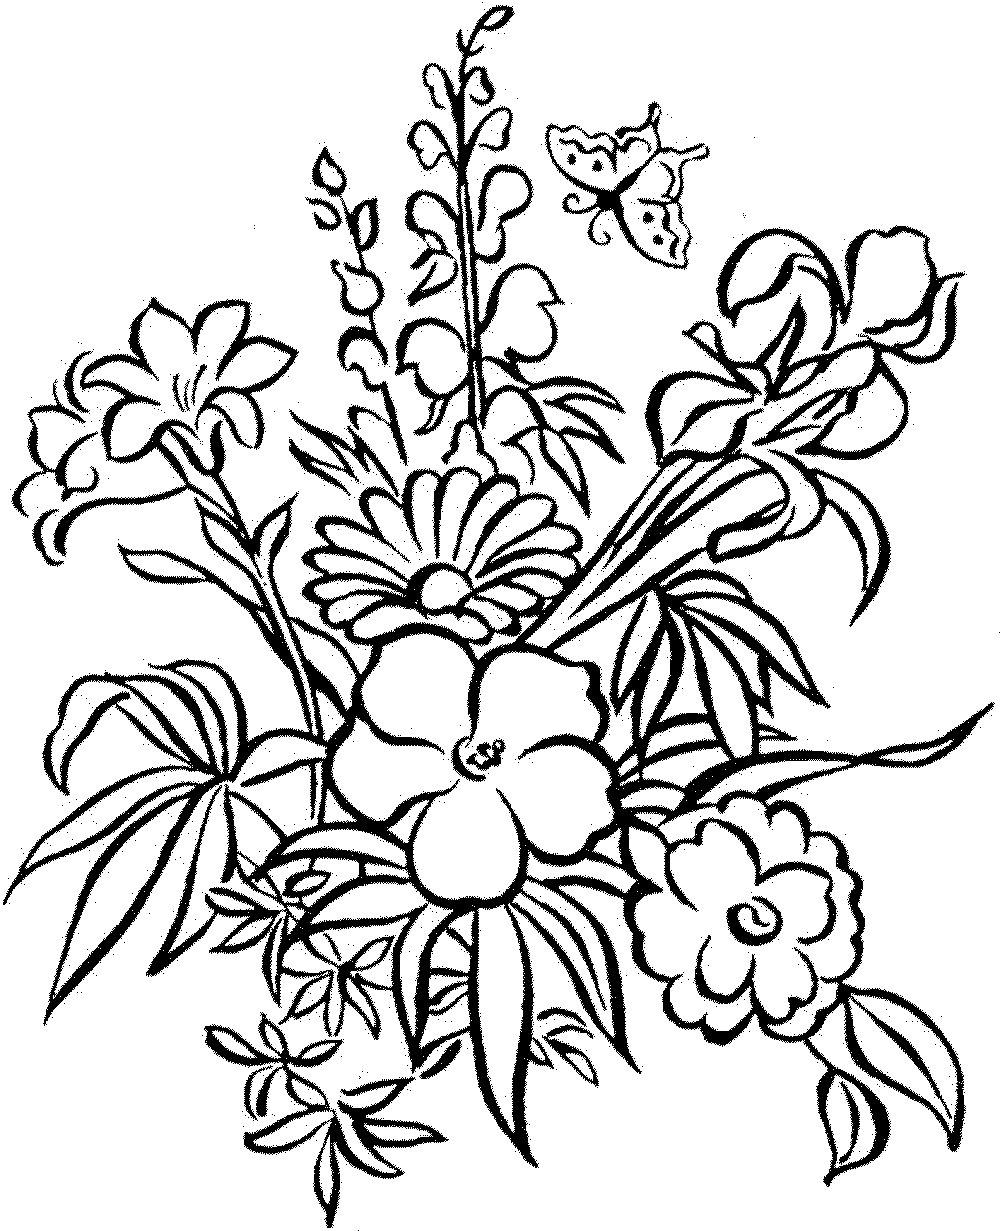 pictures of flowers coloring pages top 47 free printable flowers coloring pages online pages pictures of coloring flowers